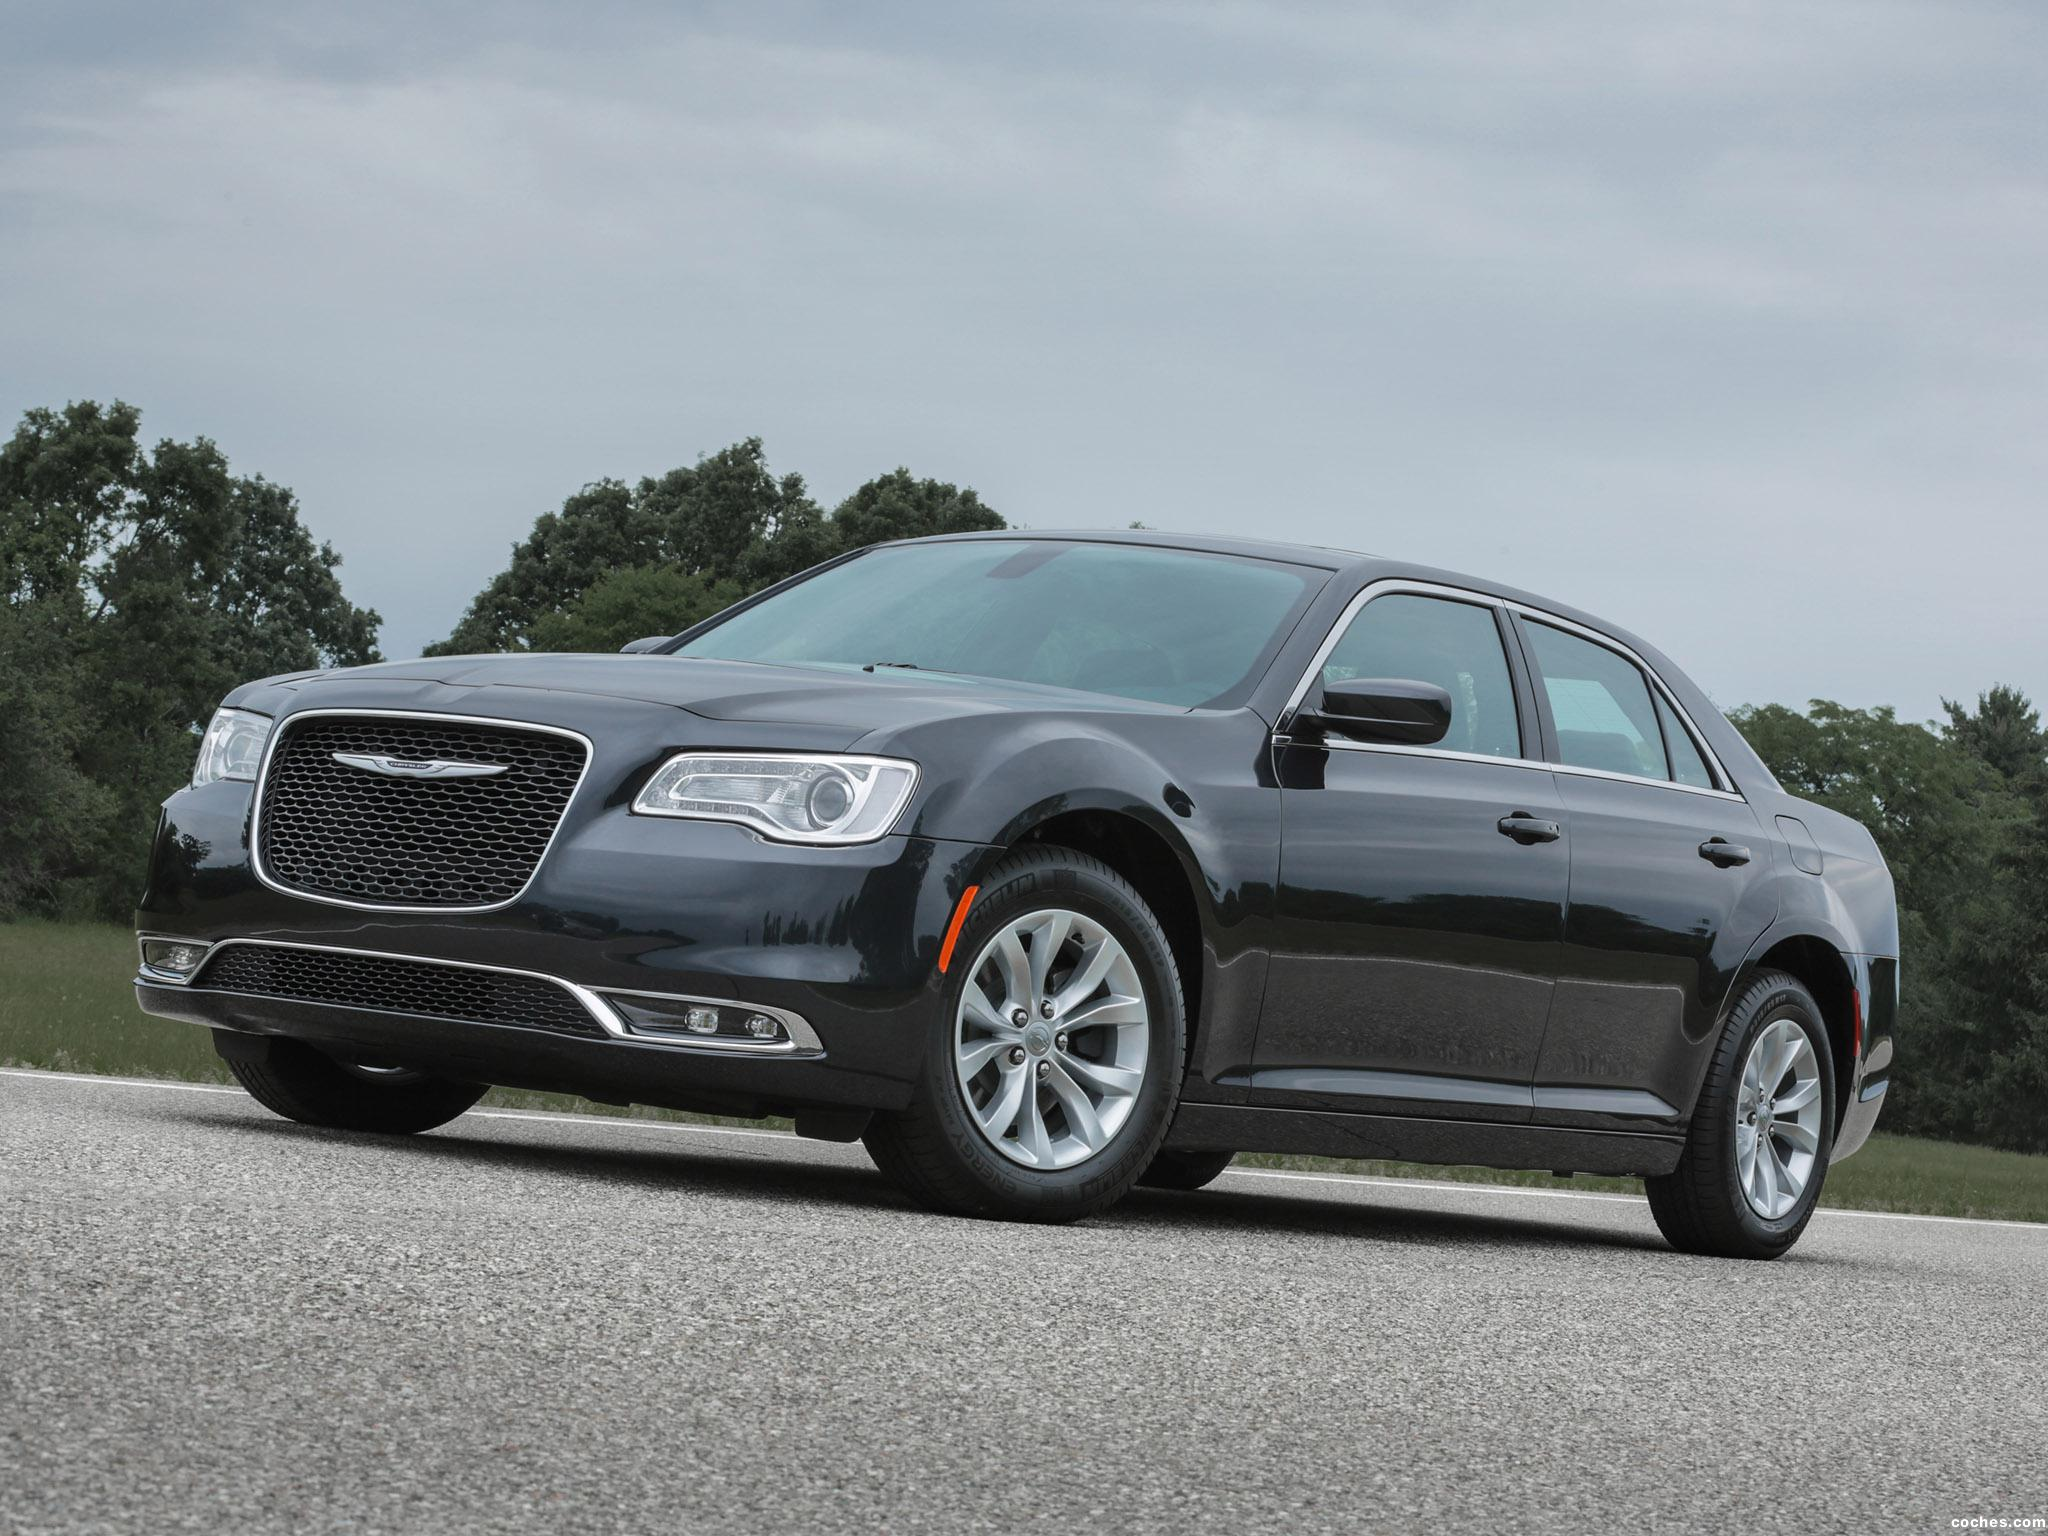 Foto 0 de Chrysler 300 90th Anniversary Edition 2015